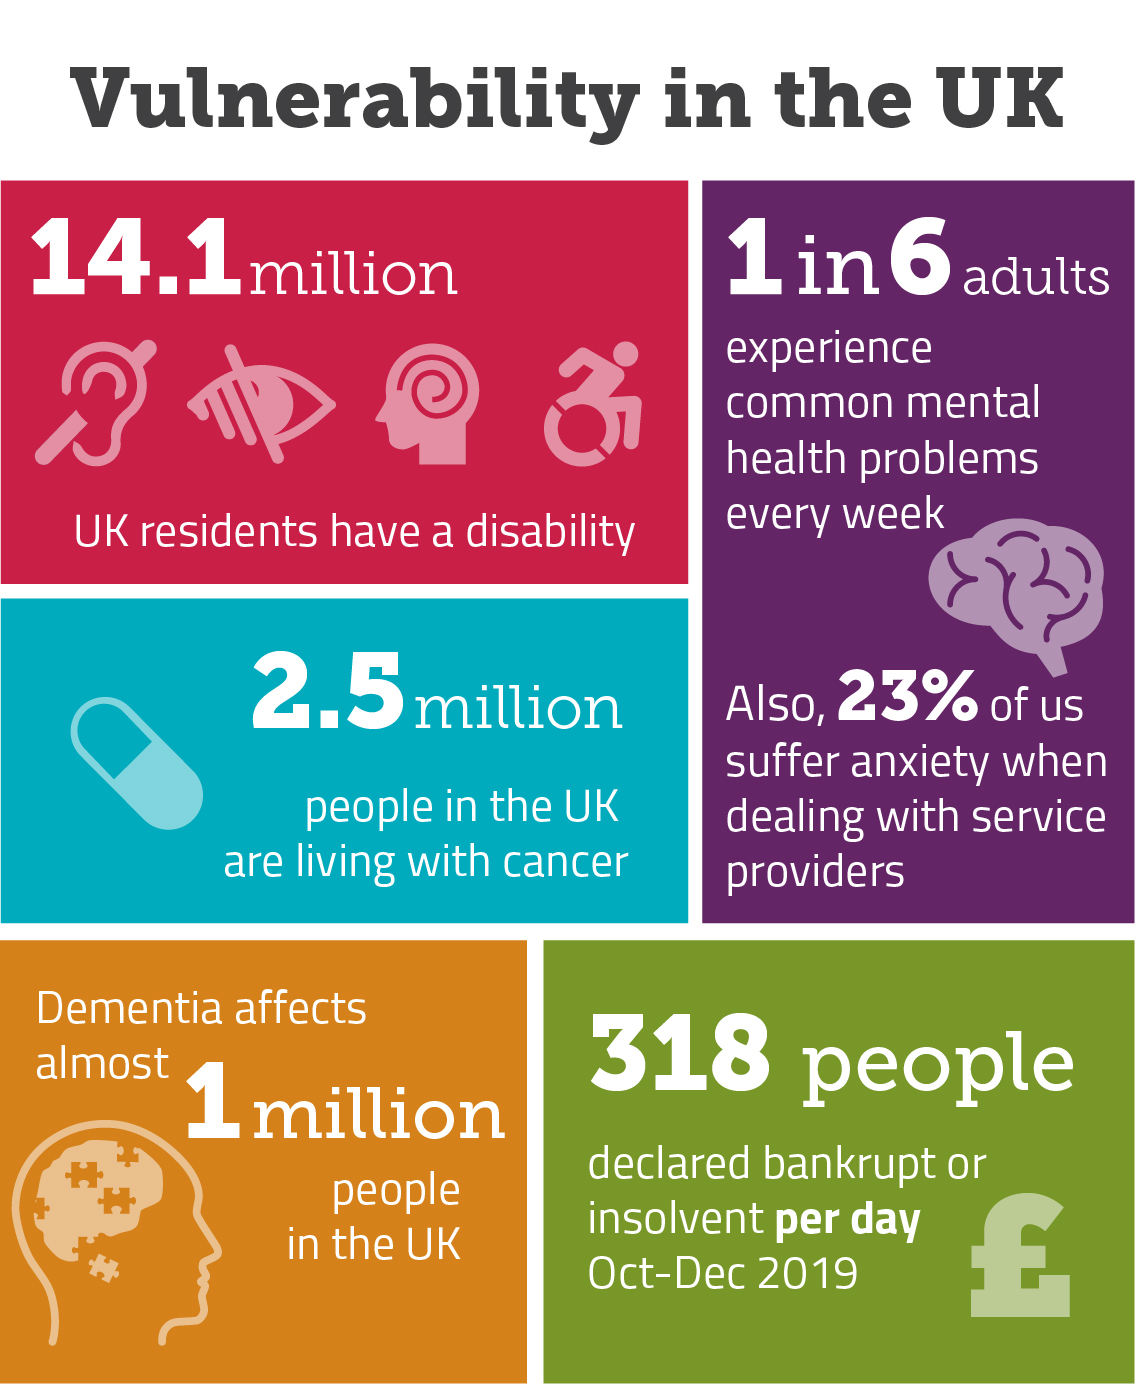 The graphic shows some statistics of how people in the UK are affected by circumstances that make them vulnerable. It sets out that 14.1 million people have a disability, that 2.5 million people are living with cancer, almost 1 million people are affected by dementia, 1 in 6 adults experience common mental health problem every week and 318 people are declared bankrupt or insolvent every day.